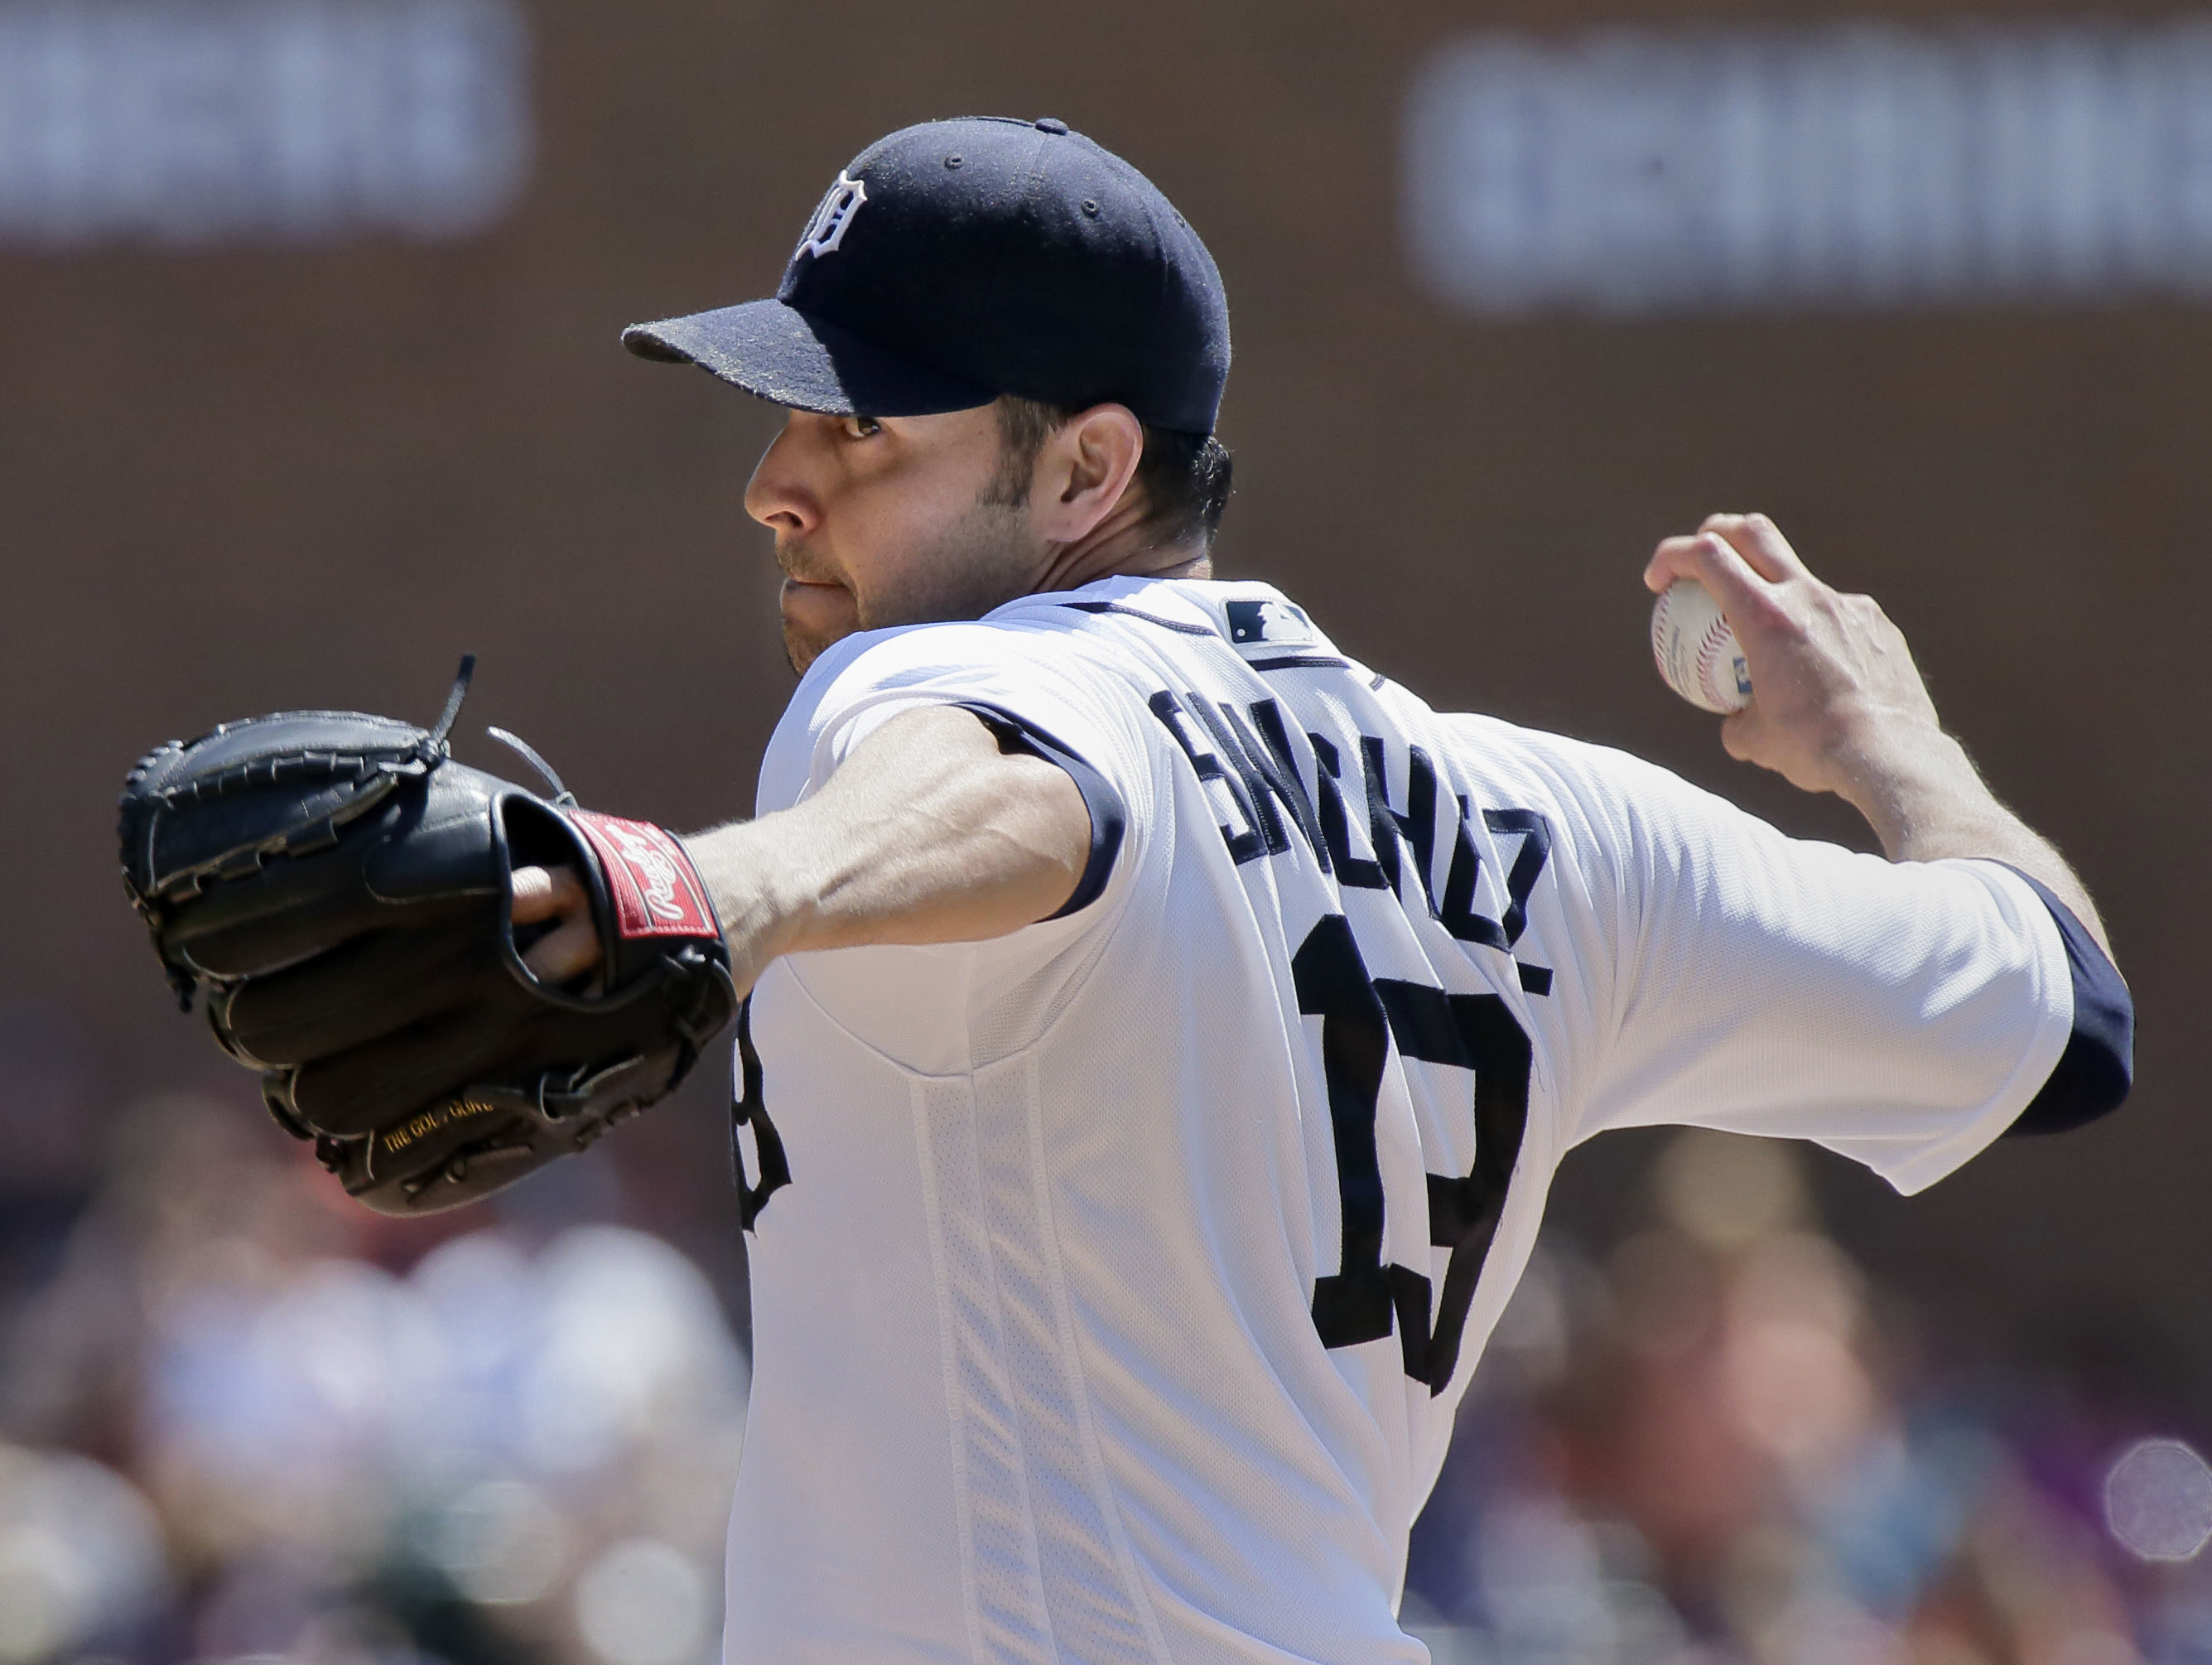 Detroit Tigers' Anibal Sanchez pitches against the New York Mets during the first inning of an interleague baseball game Sunday, Aug. 7, 2016, in Detroit. (AP Photo/Duane Burleson)